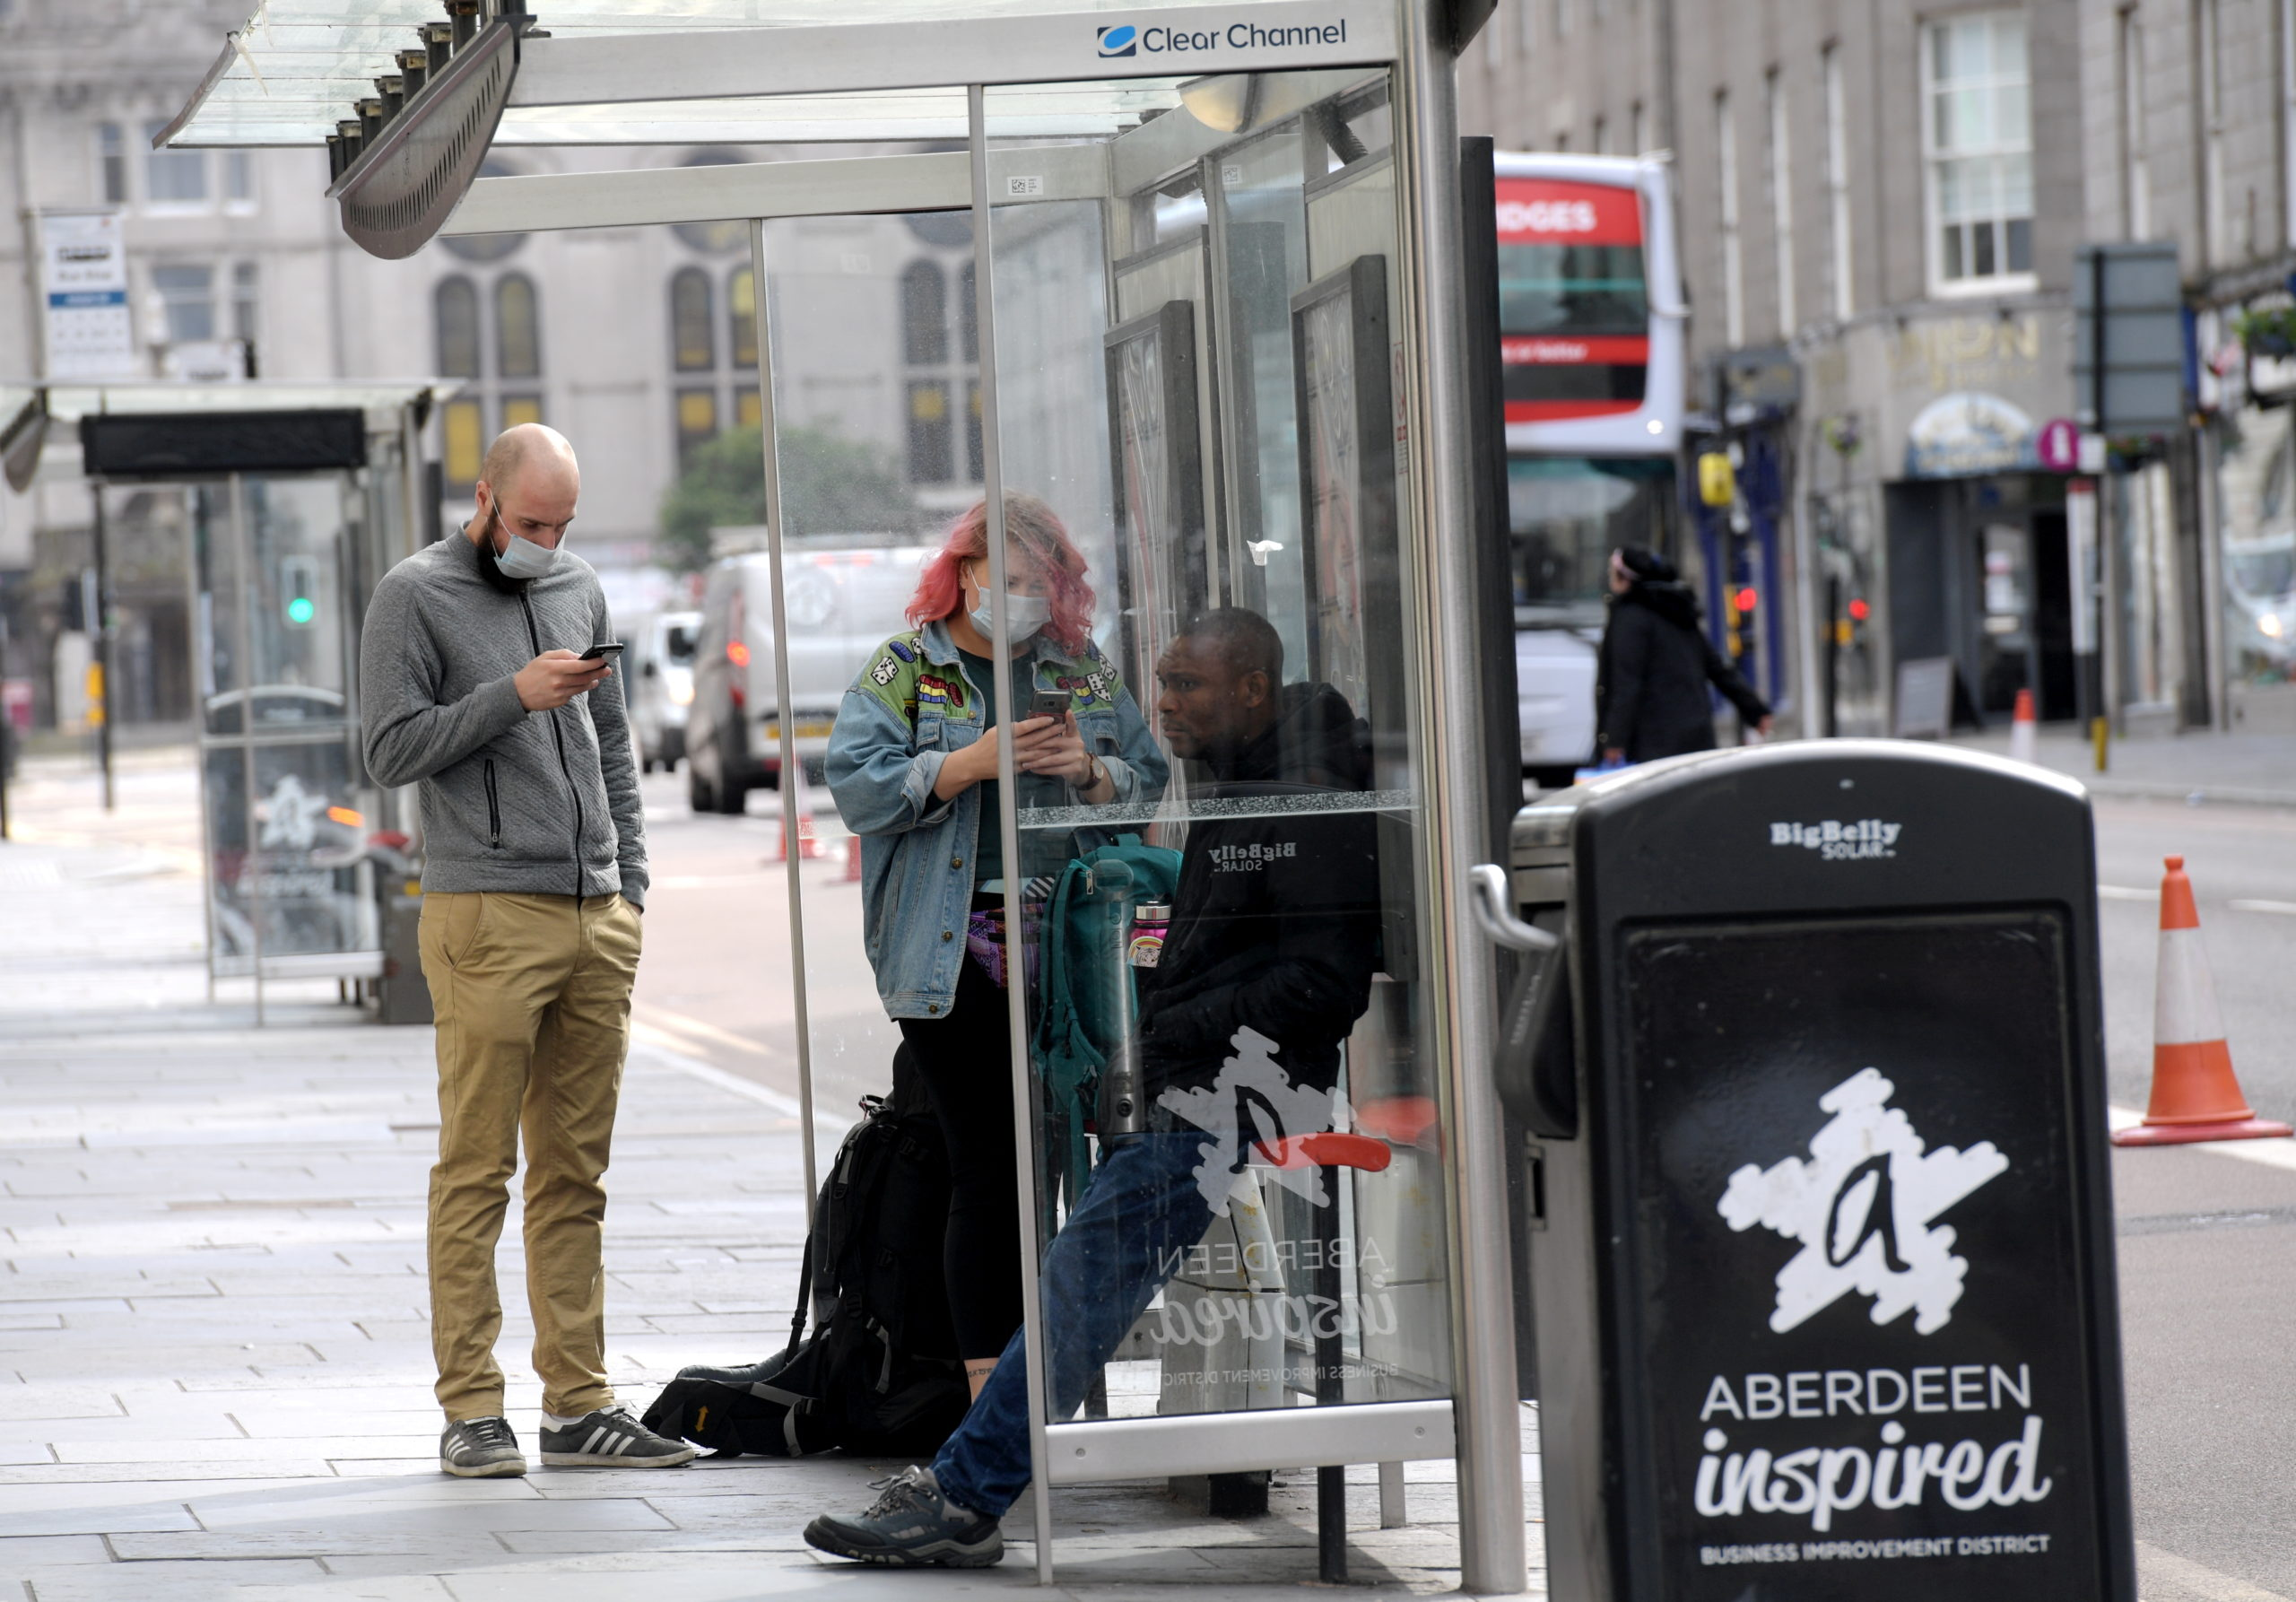 Passengers wear face coverings while waiting for a bus on Aberdeen's Union Street.